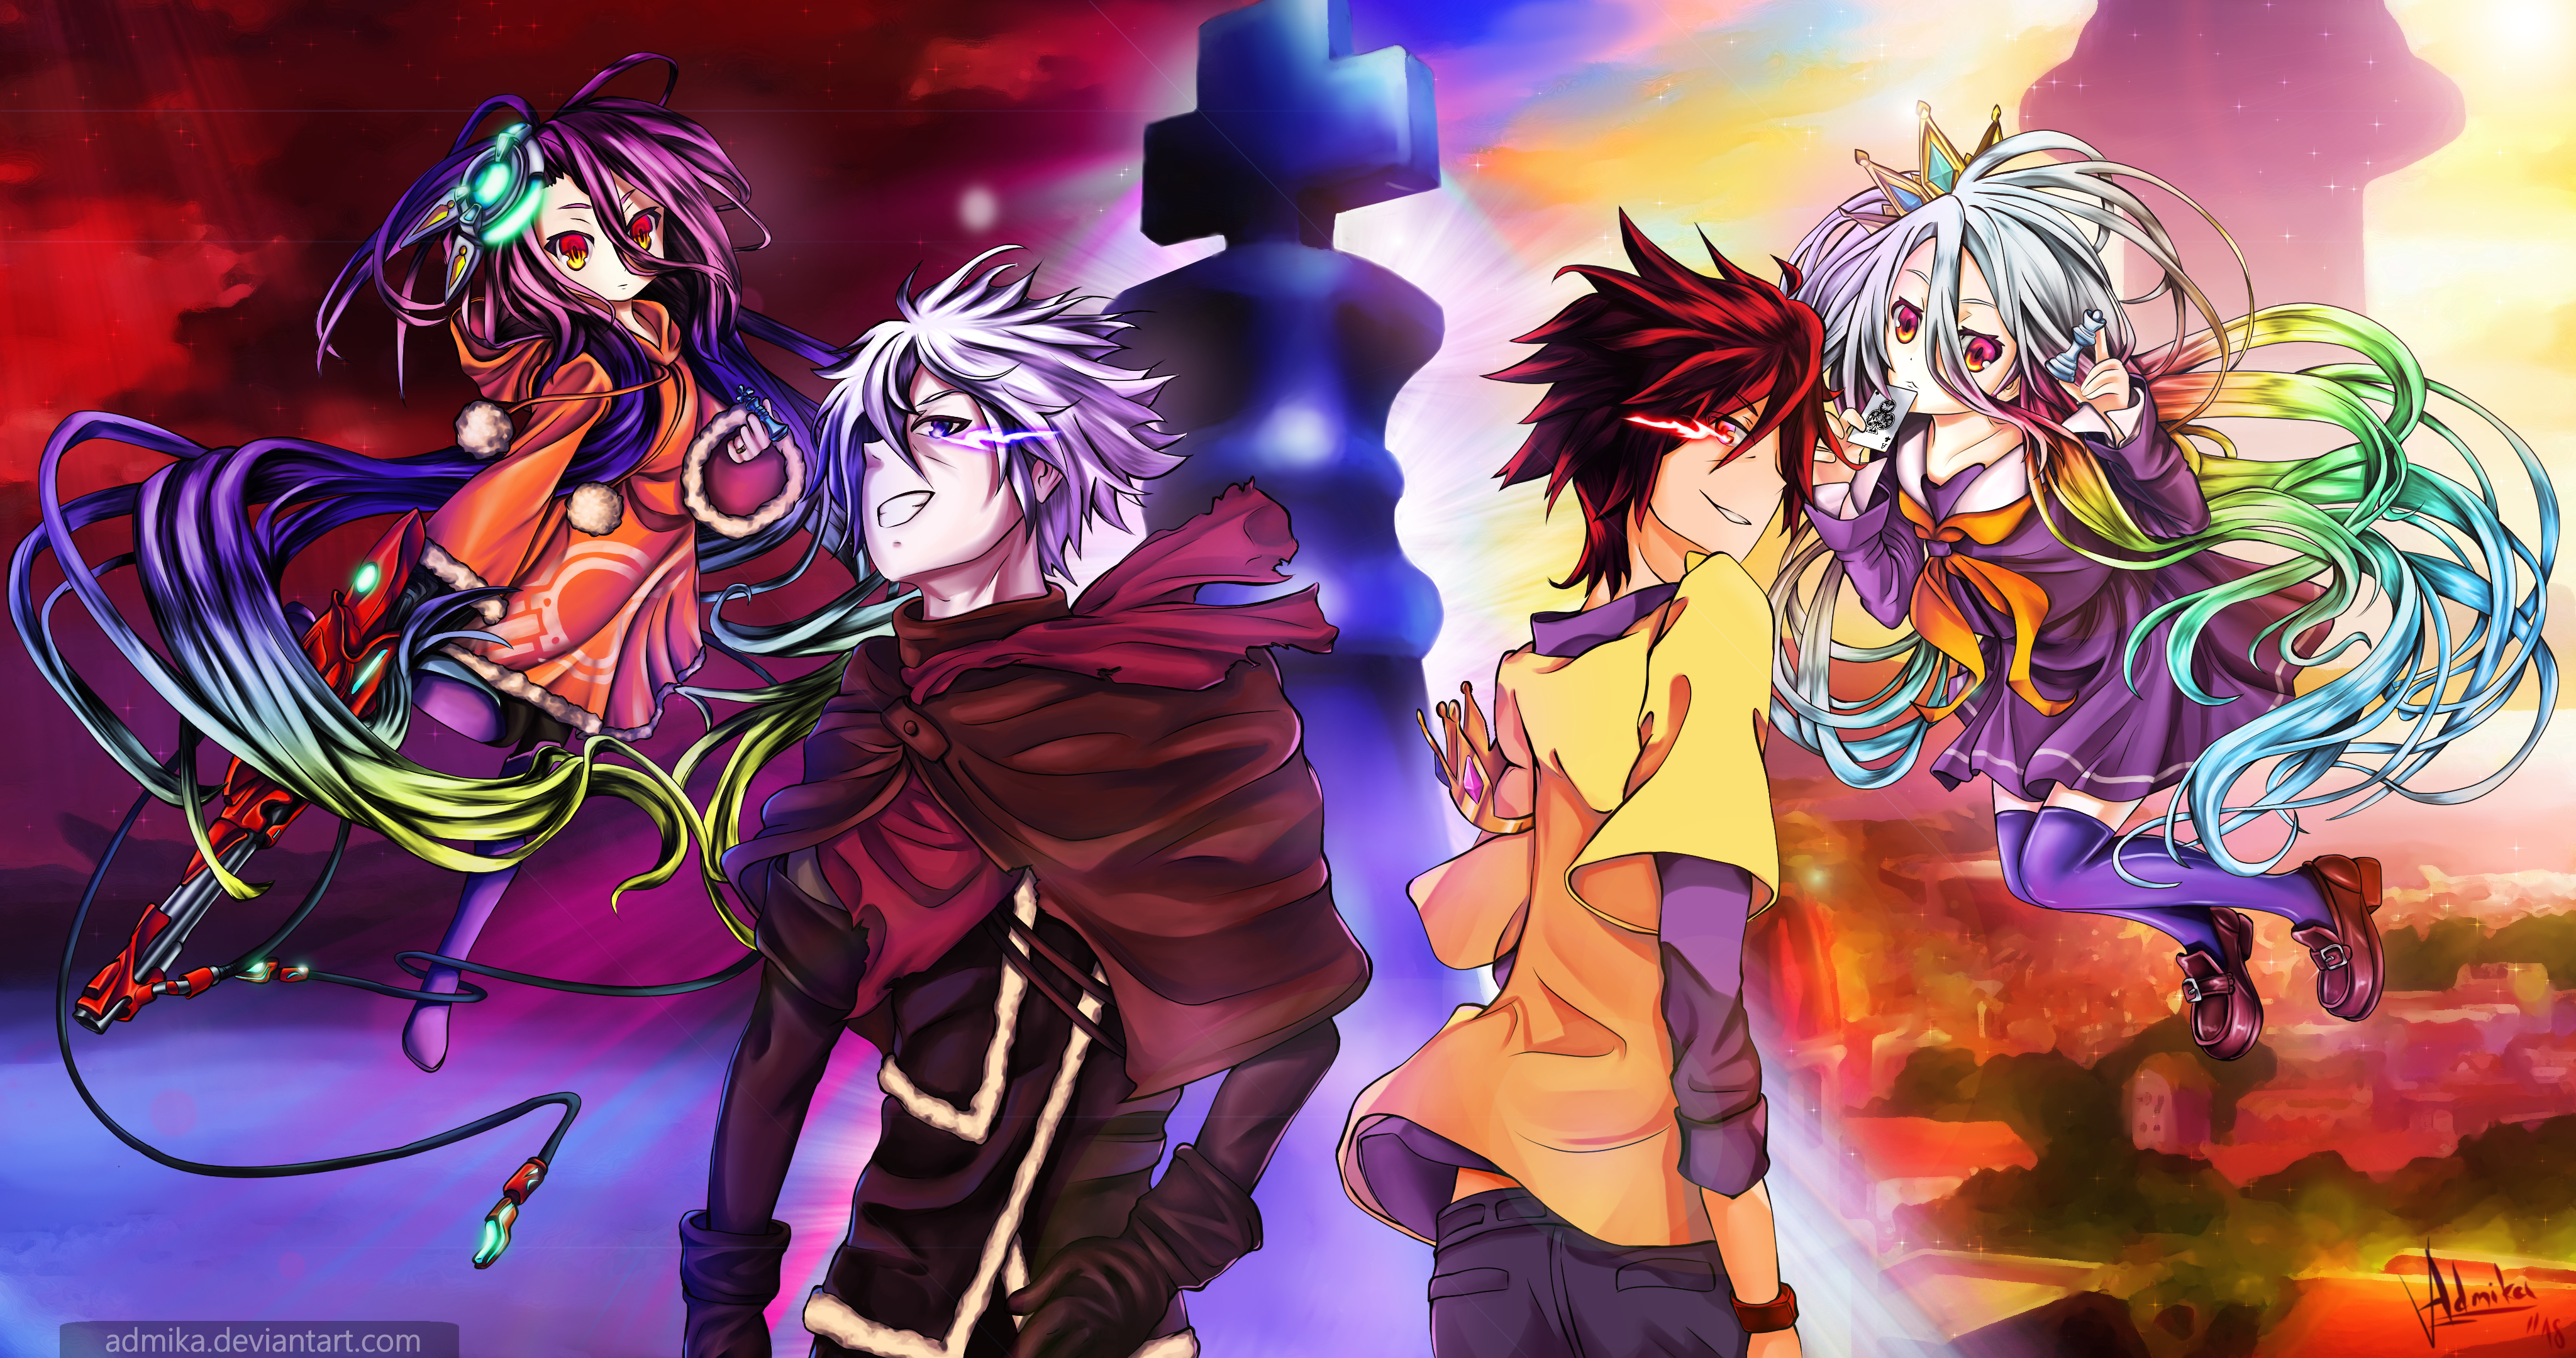 No Game No Life Hd Wallpaper Posted By John Thompson